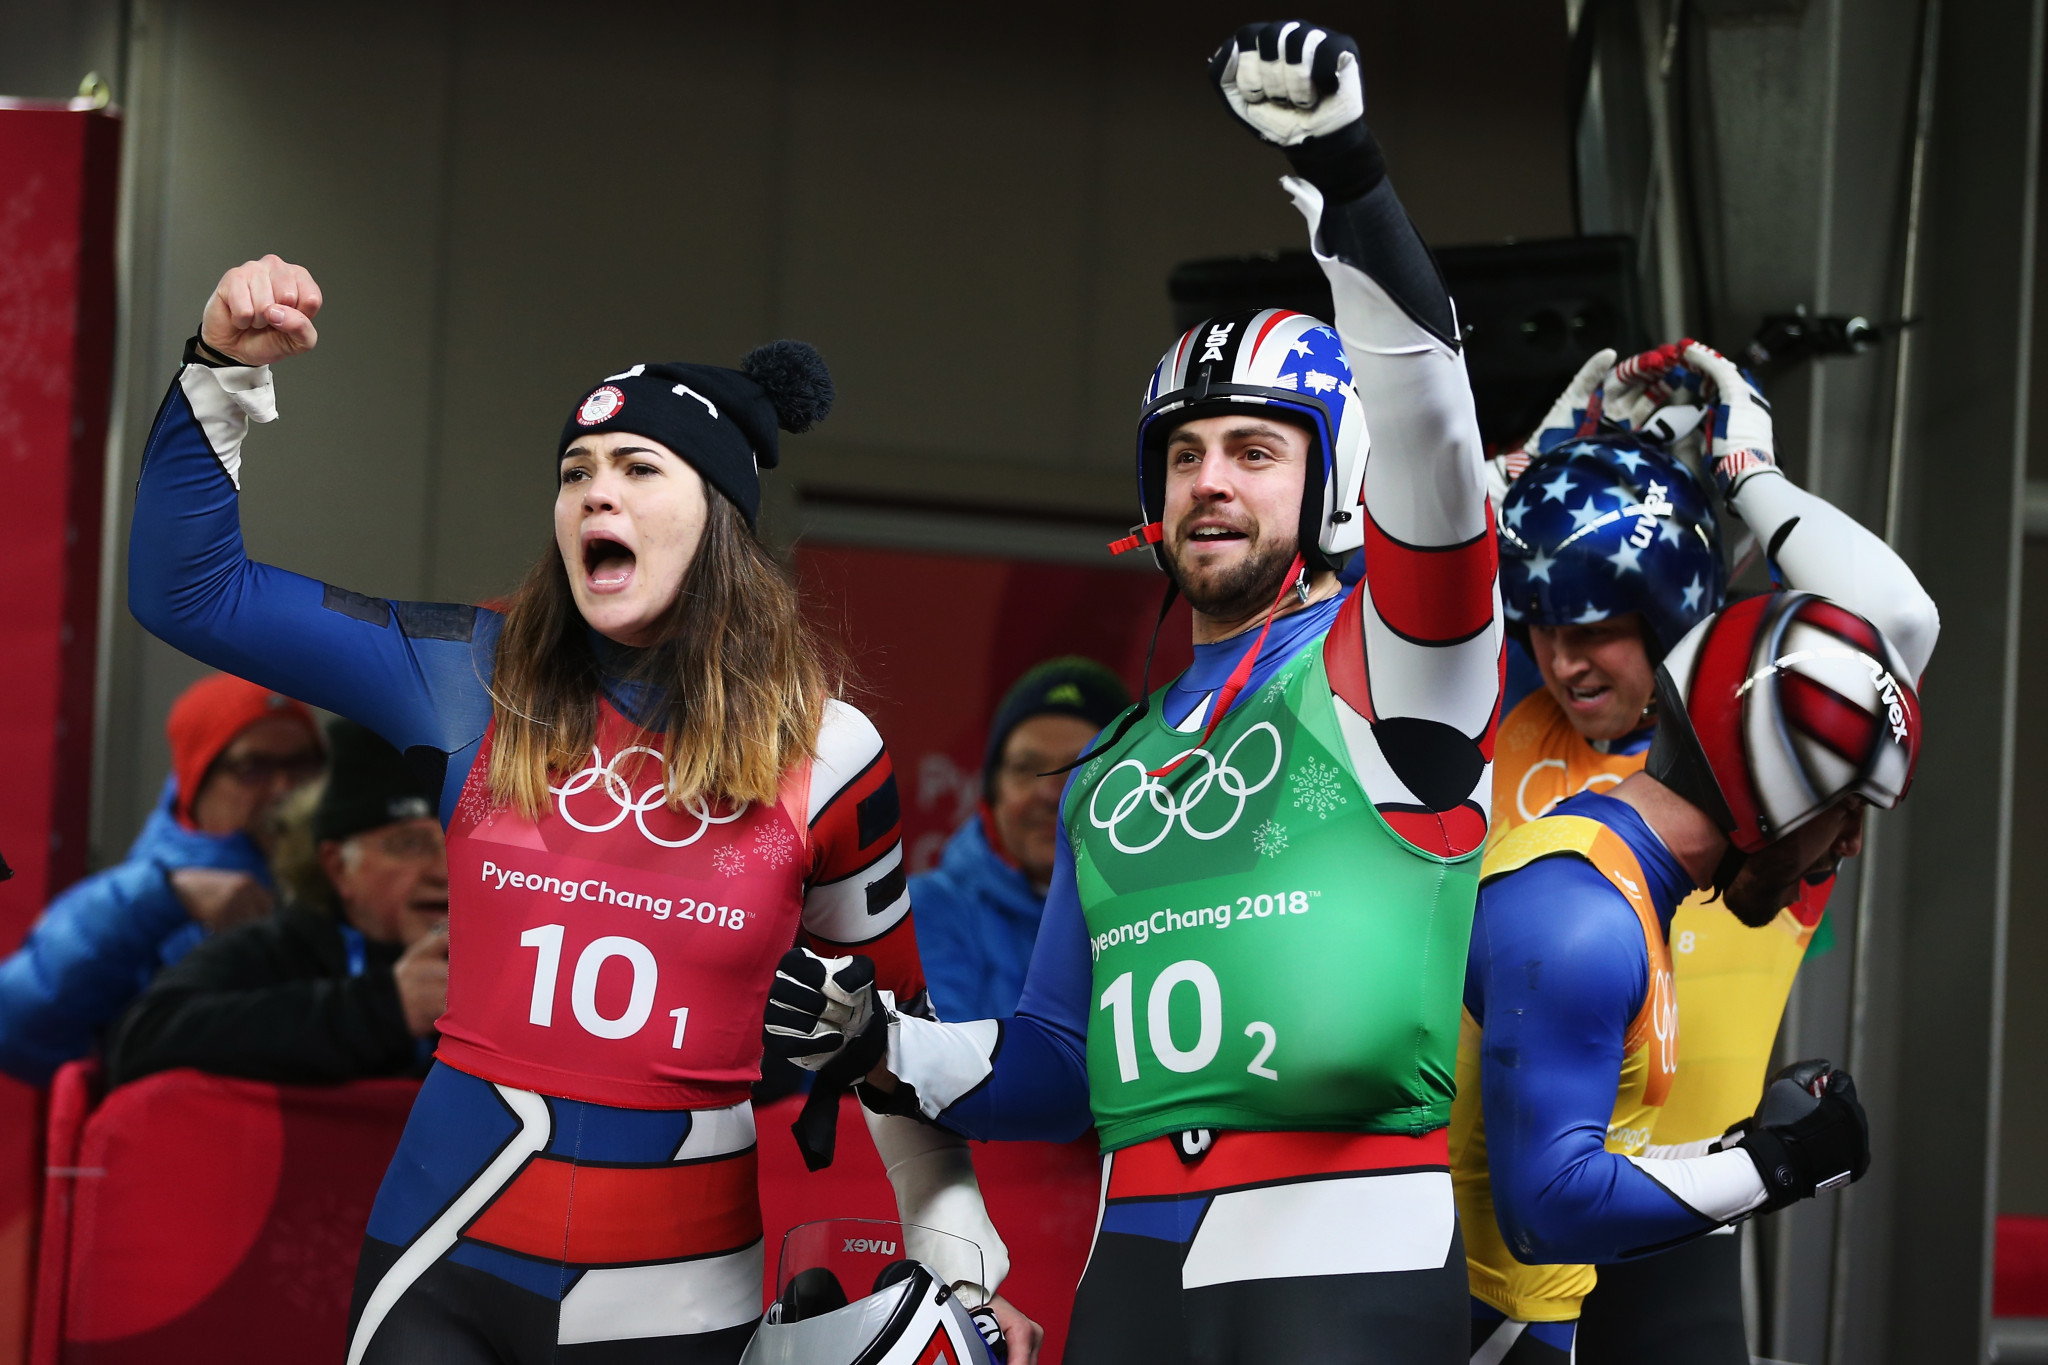 USA Luge raised funds for good causes away from the ice ©Getty Images